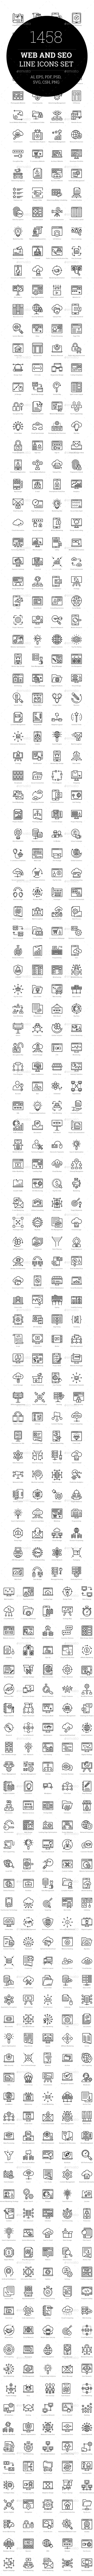 1458 Web and Seo Line Icons Set - Icons